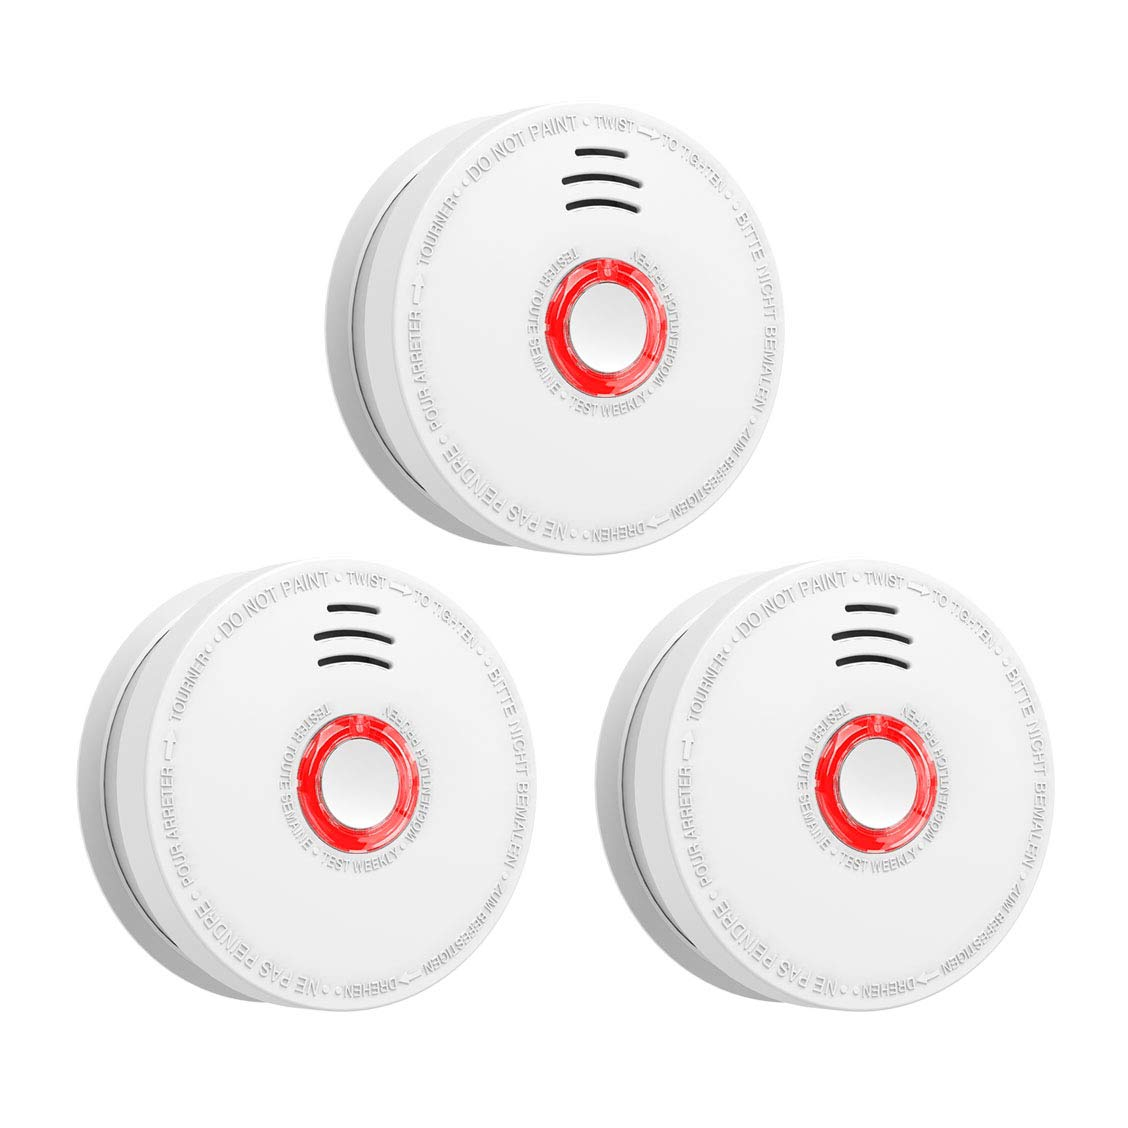 SITERWELL Smoke Detector and Fire Alarm 3 Pack DC 9V Battery (Included) Operated Photoelectric Smoke Alarm with Test Button, UL Listed. Fire Detector for Home Hotel etc.